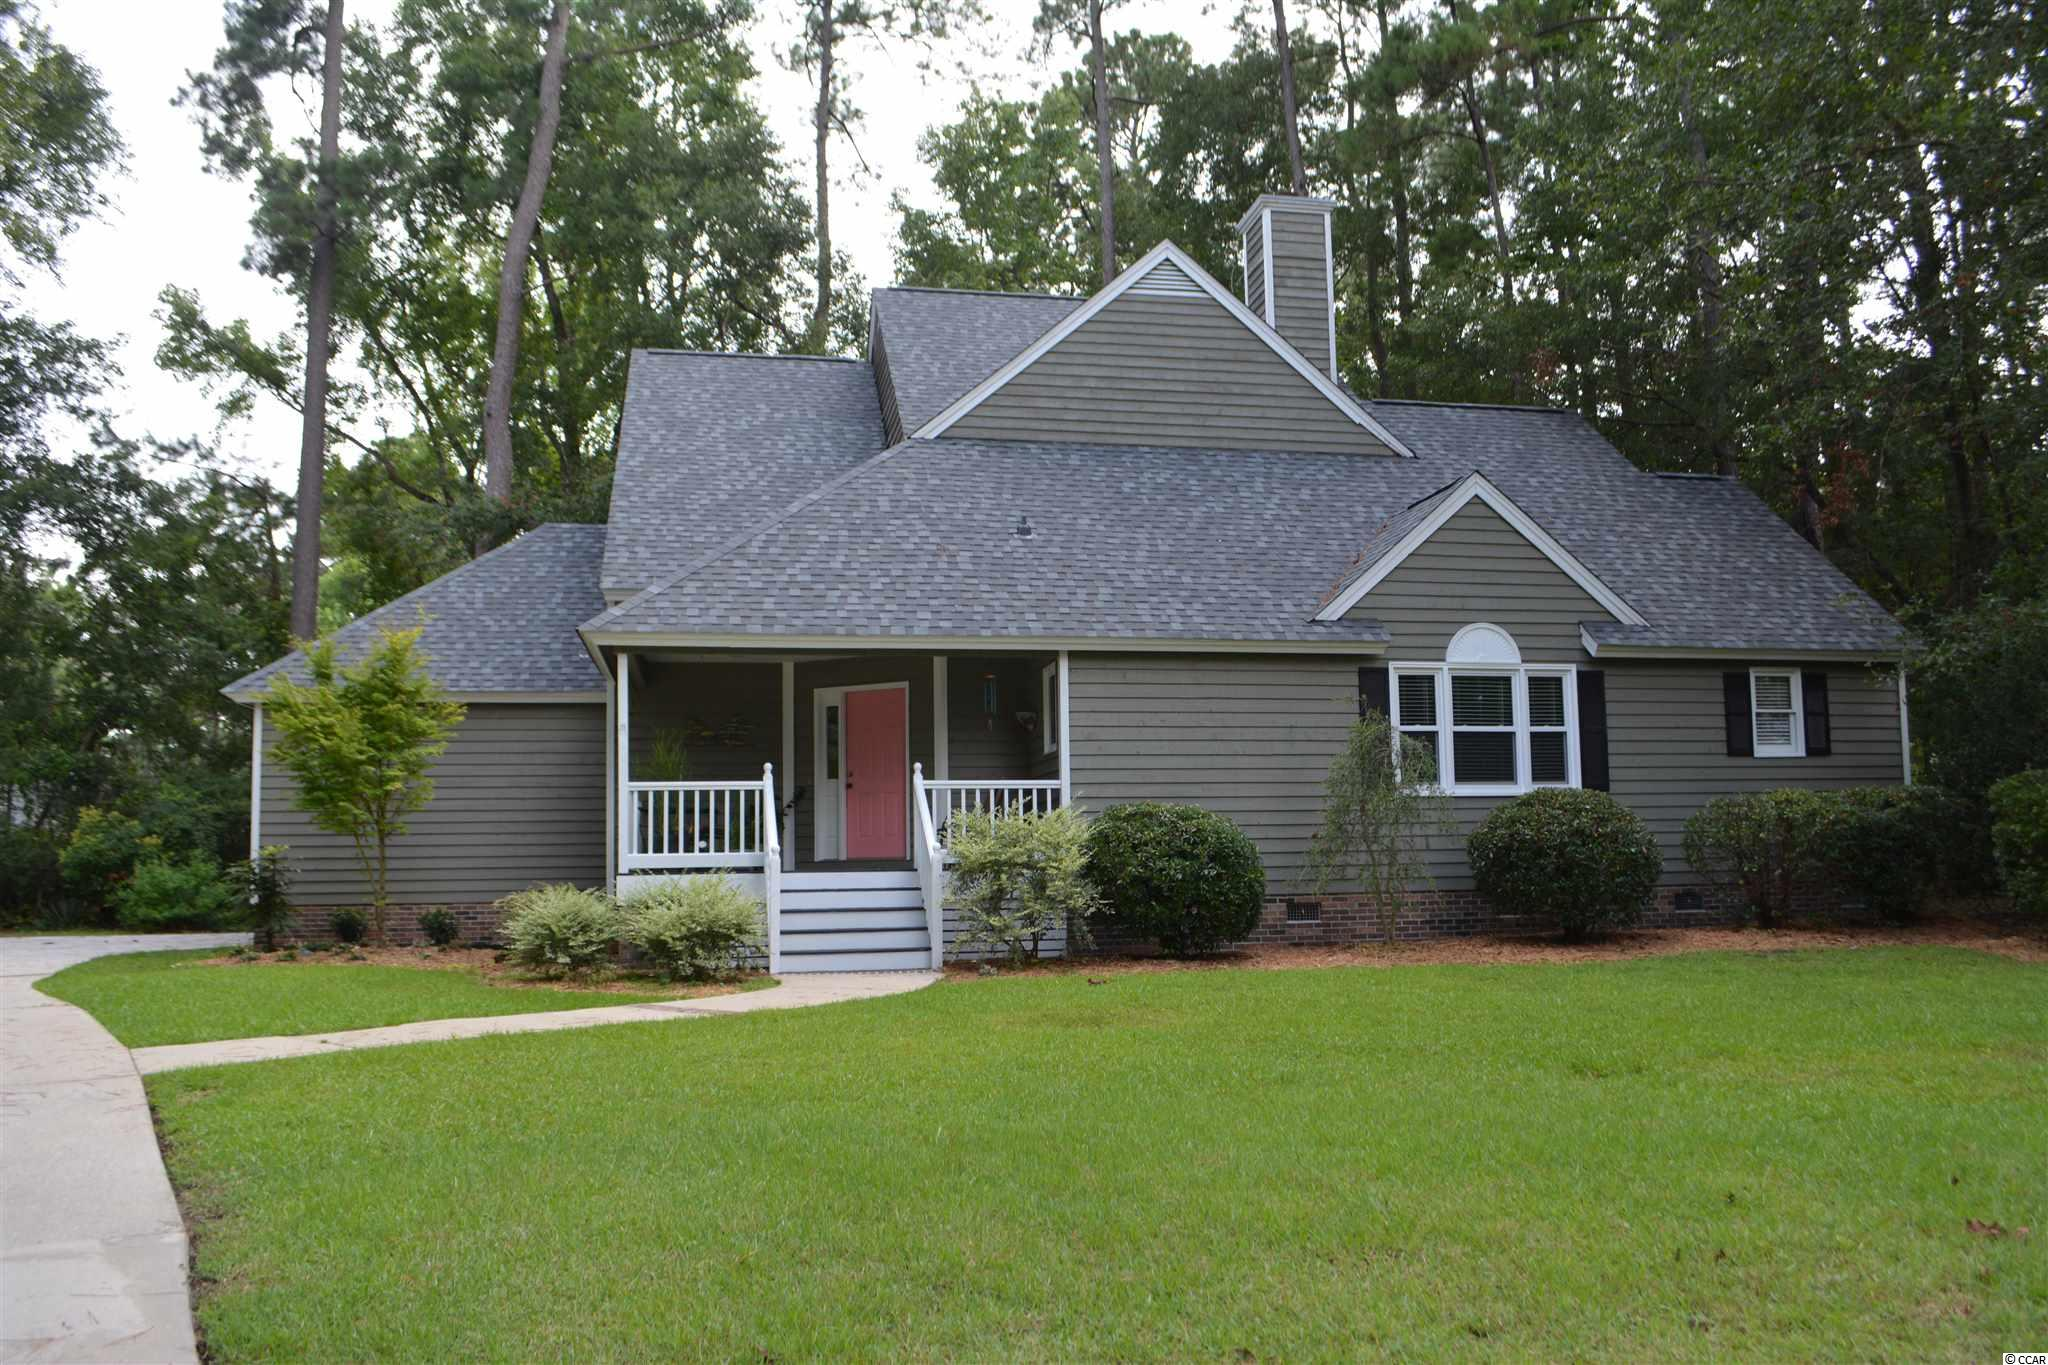 This charming low country home is located on a quiet cul-de-sac, in the sought after Ricefields Community and has a welcoming front porch. The floor to ceiling new windows span the back of the house overlooking the private, wooded large back yard. There is a renovated table space kitchen with a breakfast bar. The large, first floor owners suite opens into the cozy den and dining area. Upstairs are two generous bedrooms with a shared bath.  Ricefields also offers a community pool and boat landing.